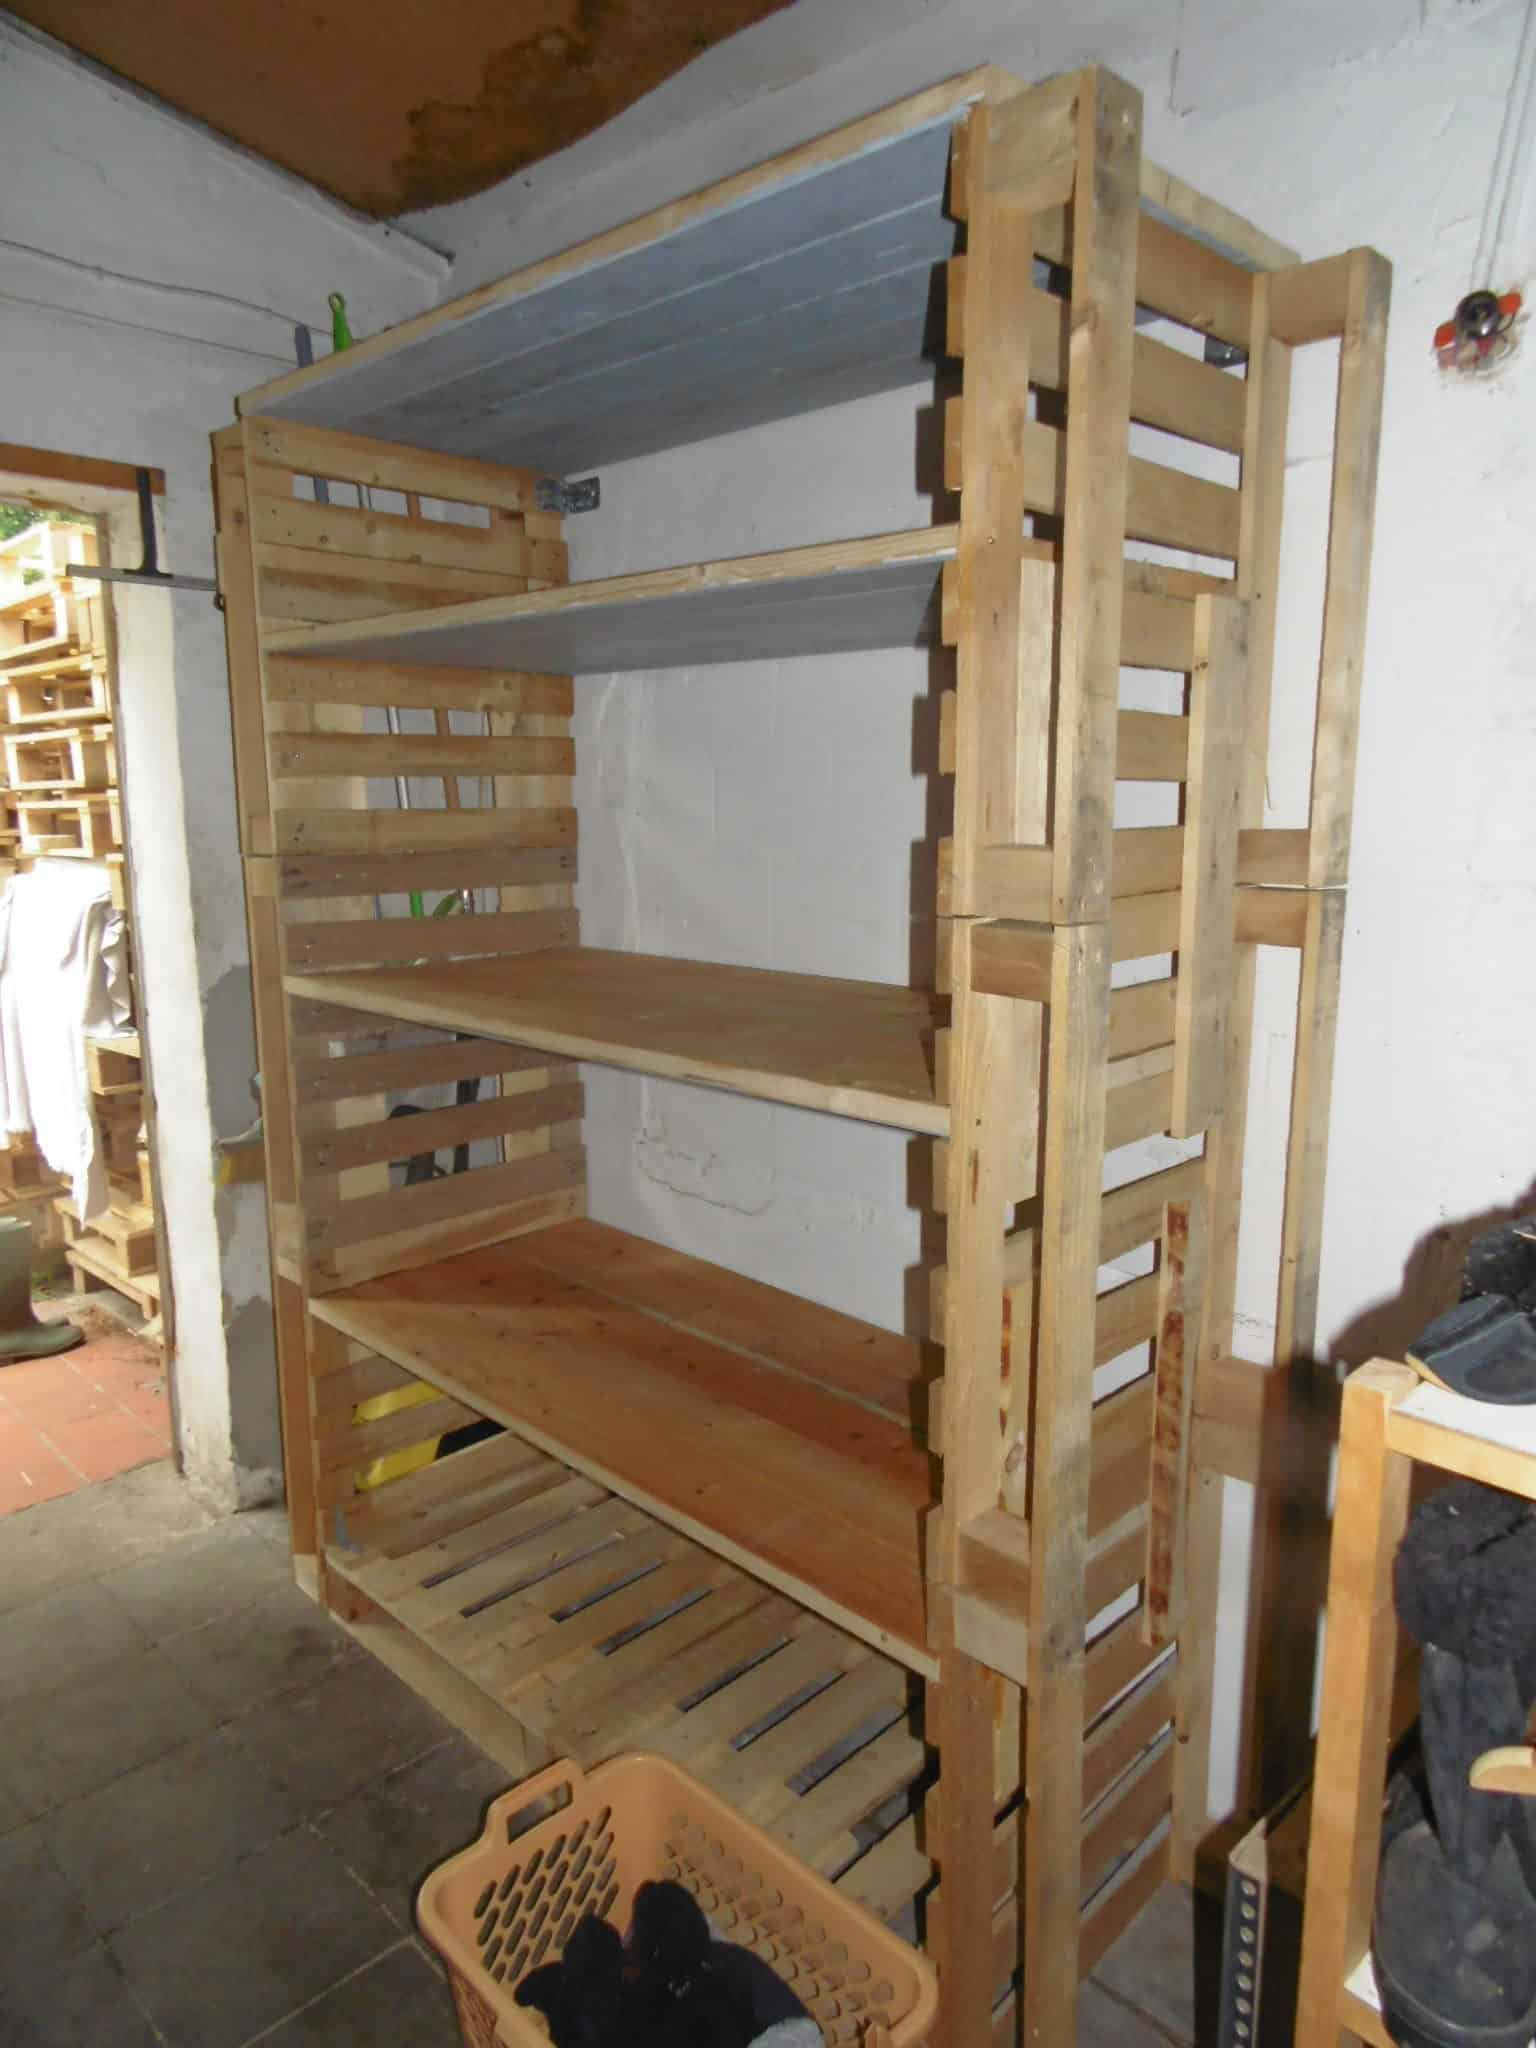 Shelves Made From Pallets Big Pallet Organization Rack For Scrap Wood O Pallet Ideas O 1001